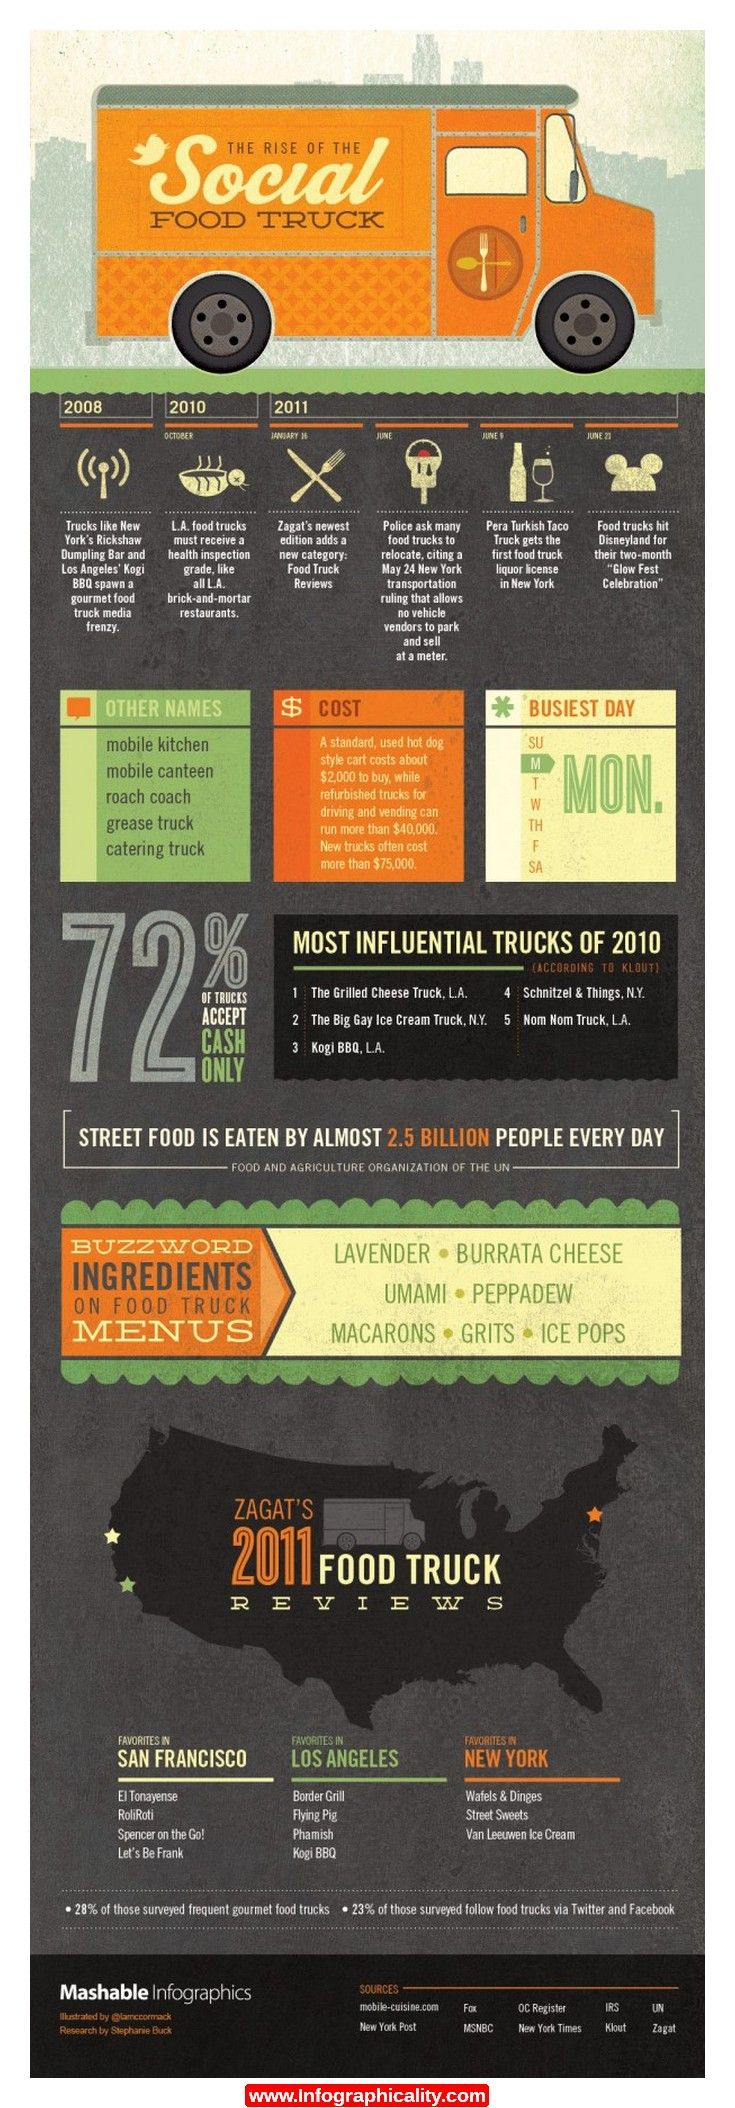 Rise Of The Social Food Truck Food 1 600x1820 Infographic - http://infographicality.com/rise-of-the-social-food-truck-food-1-600x1820-infographic/